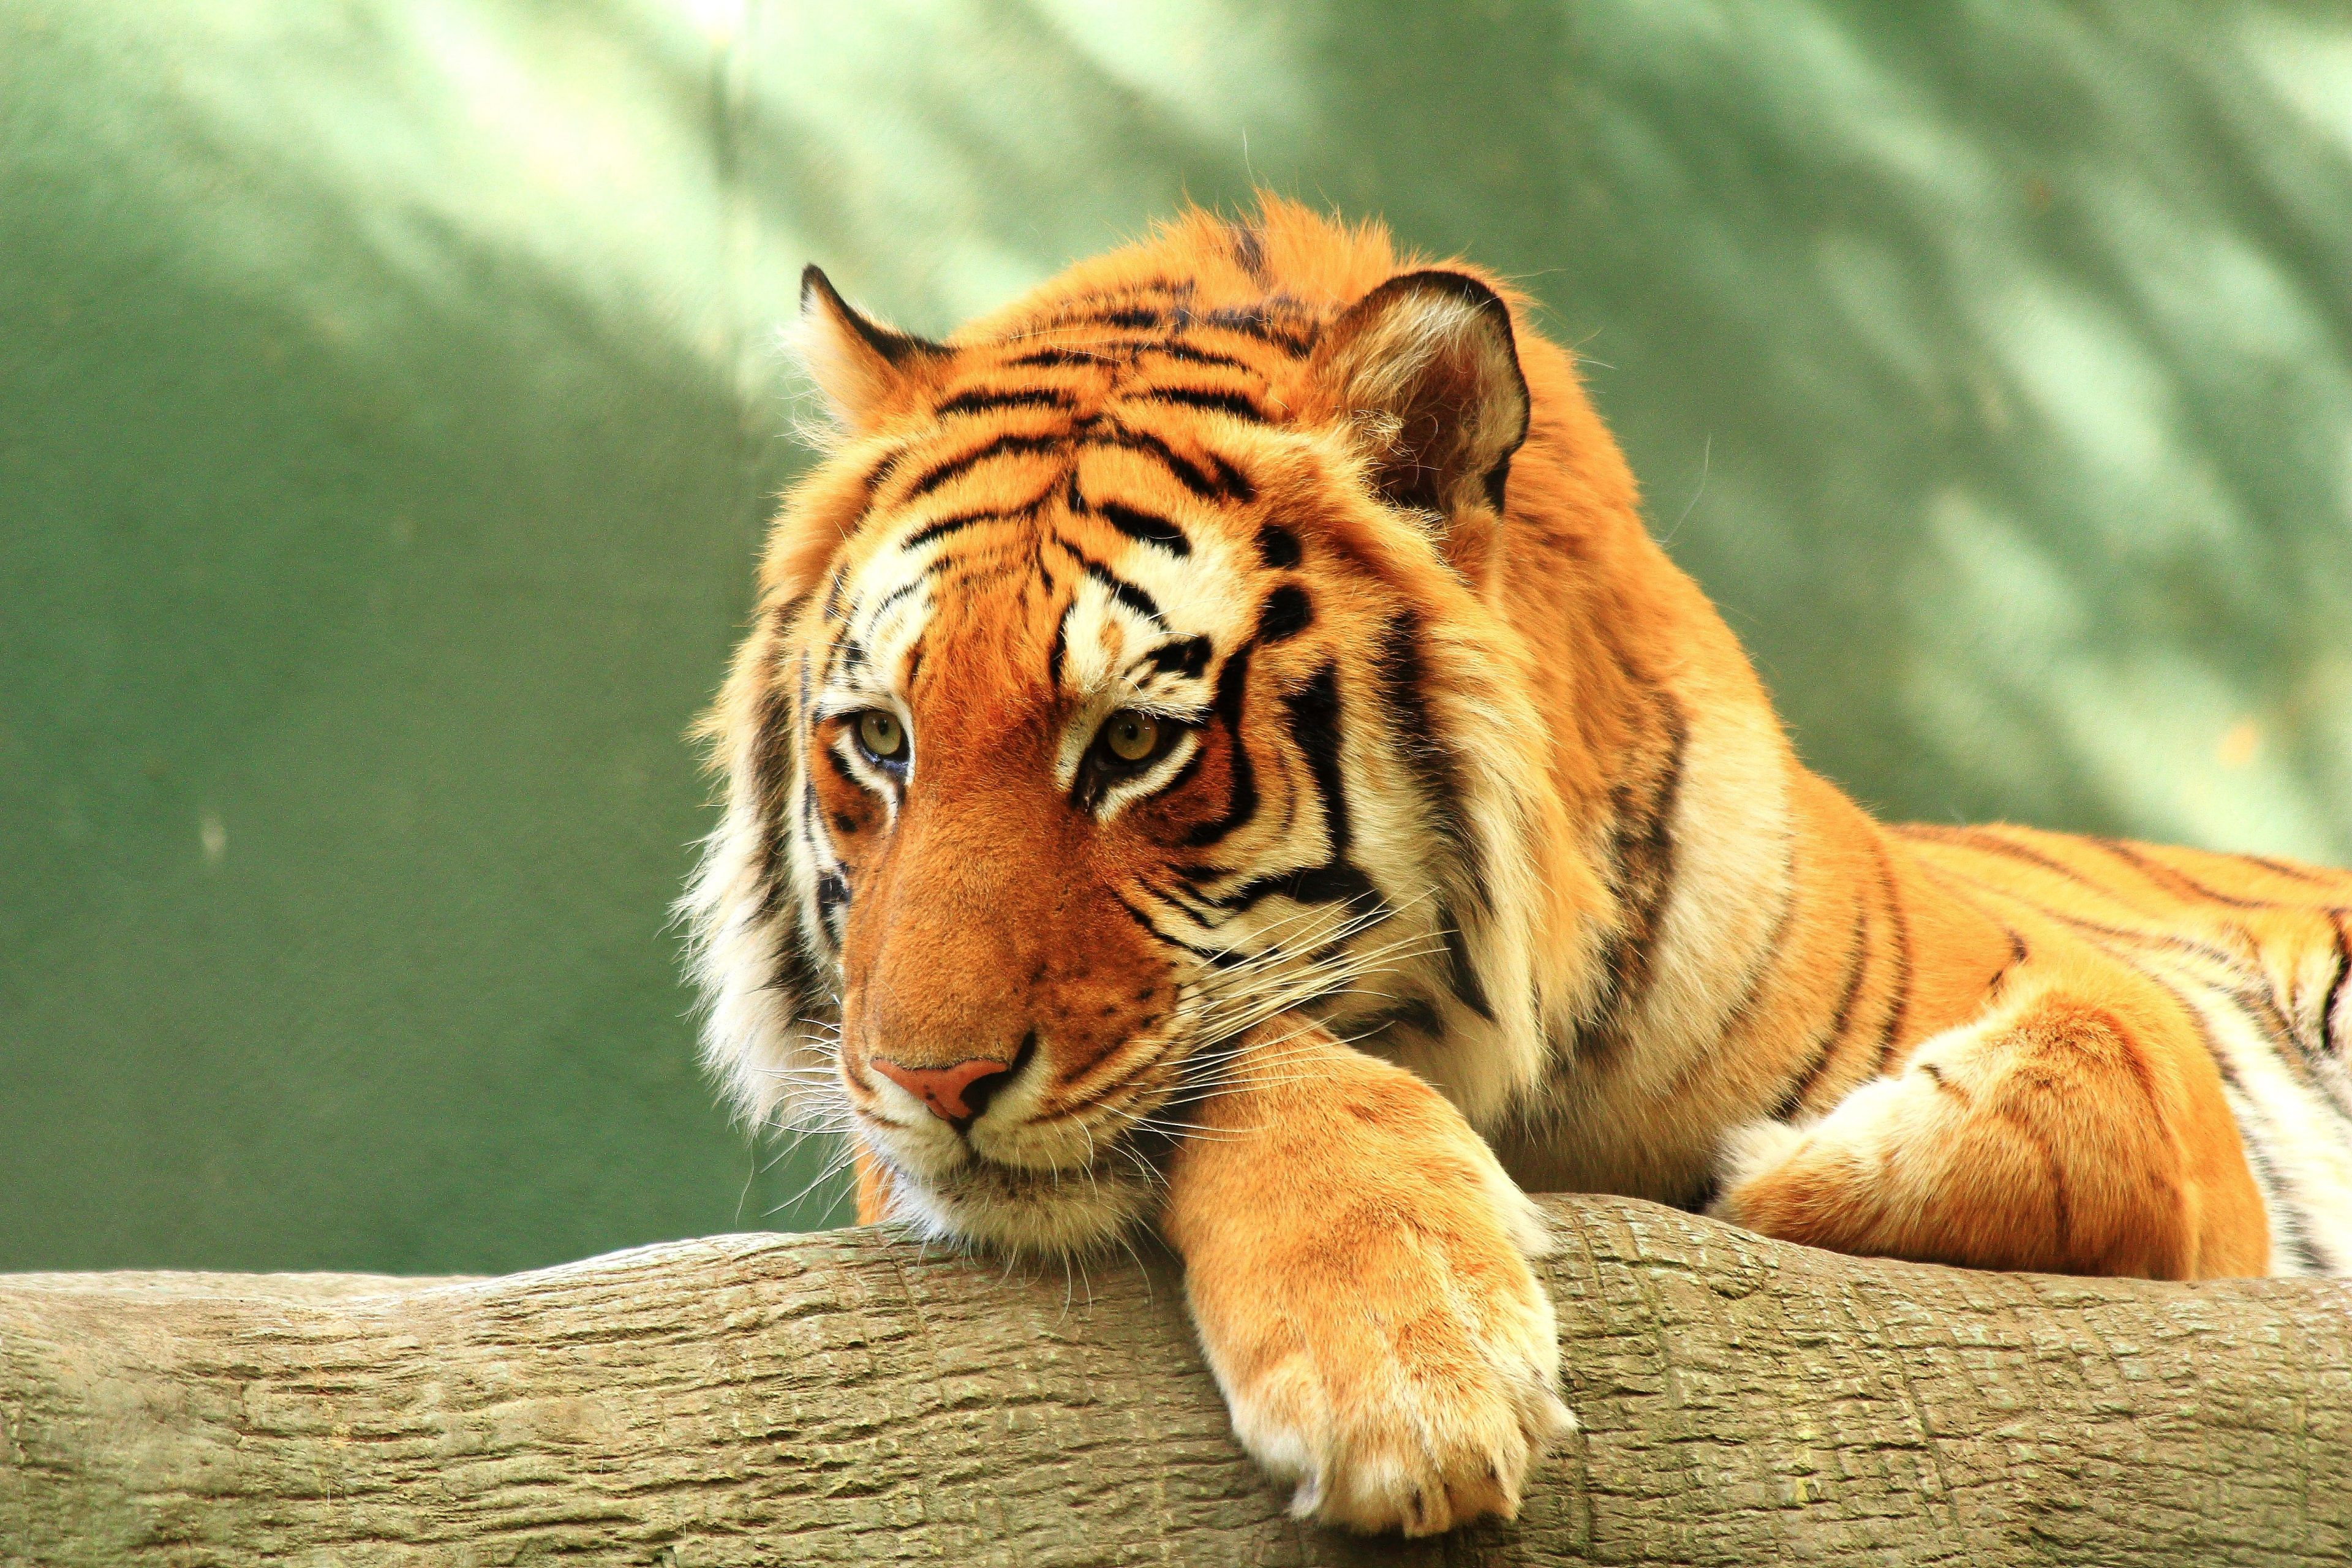 3840x2560 Tiger 4k Free Download Hd Wallpaper For Desktop Tiger Pictures Tiger Wallpaper Tiger